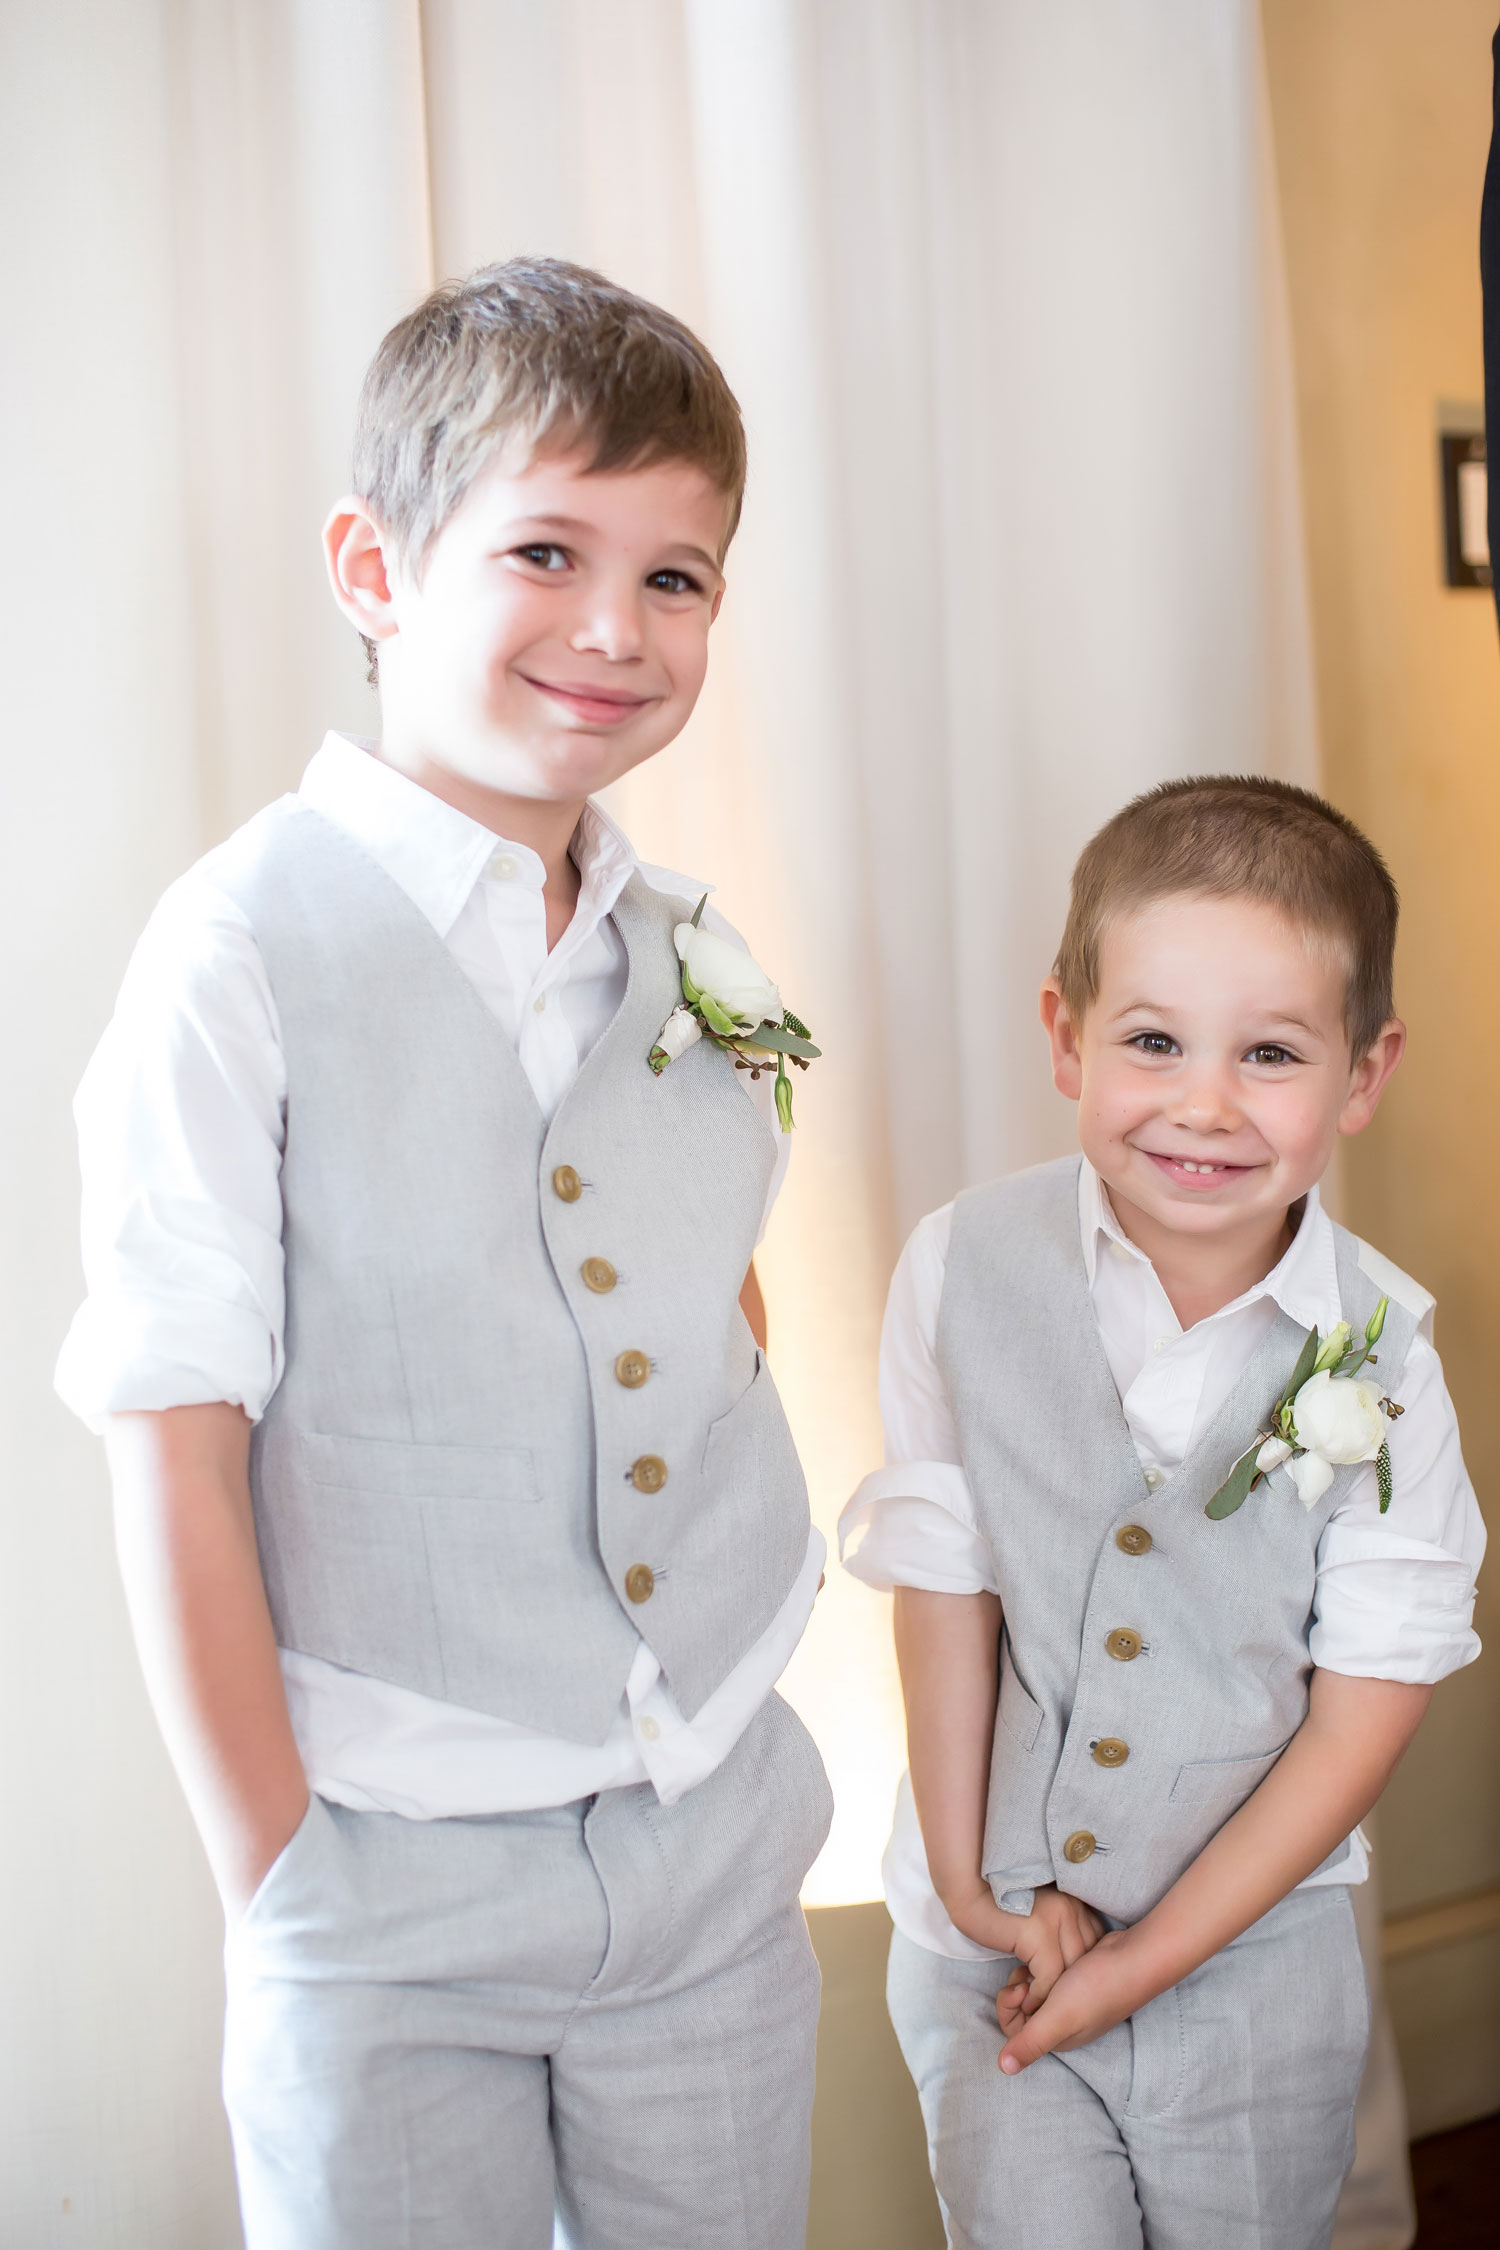 Cute ring bearers at wedding in grey slacks and grey vests smiling hands in pockets